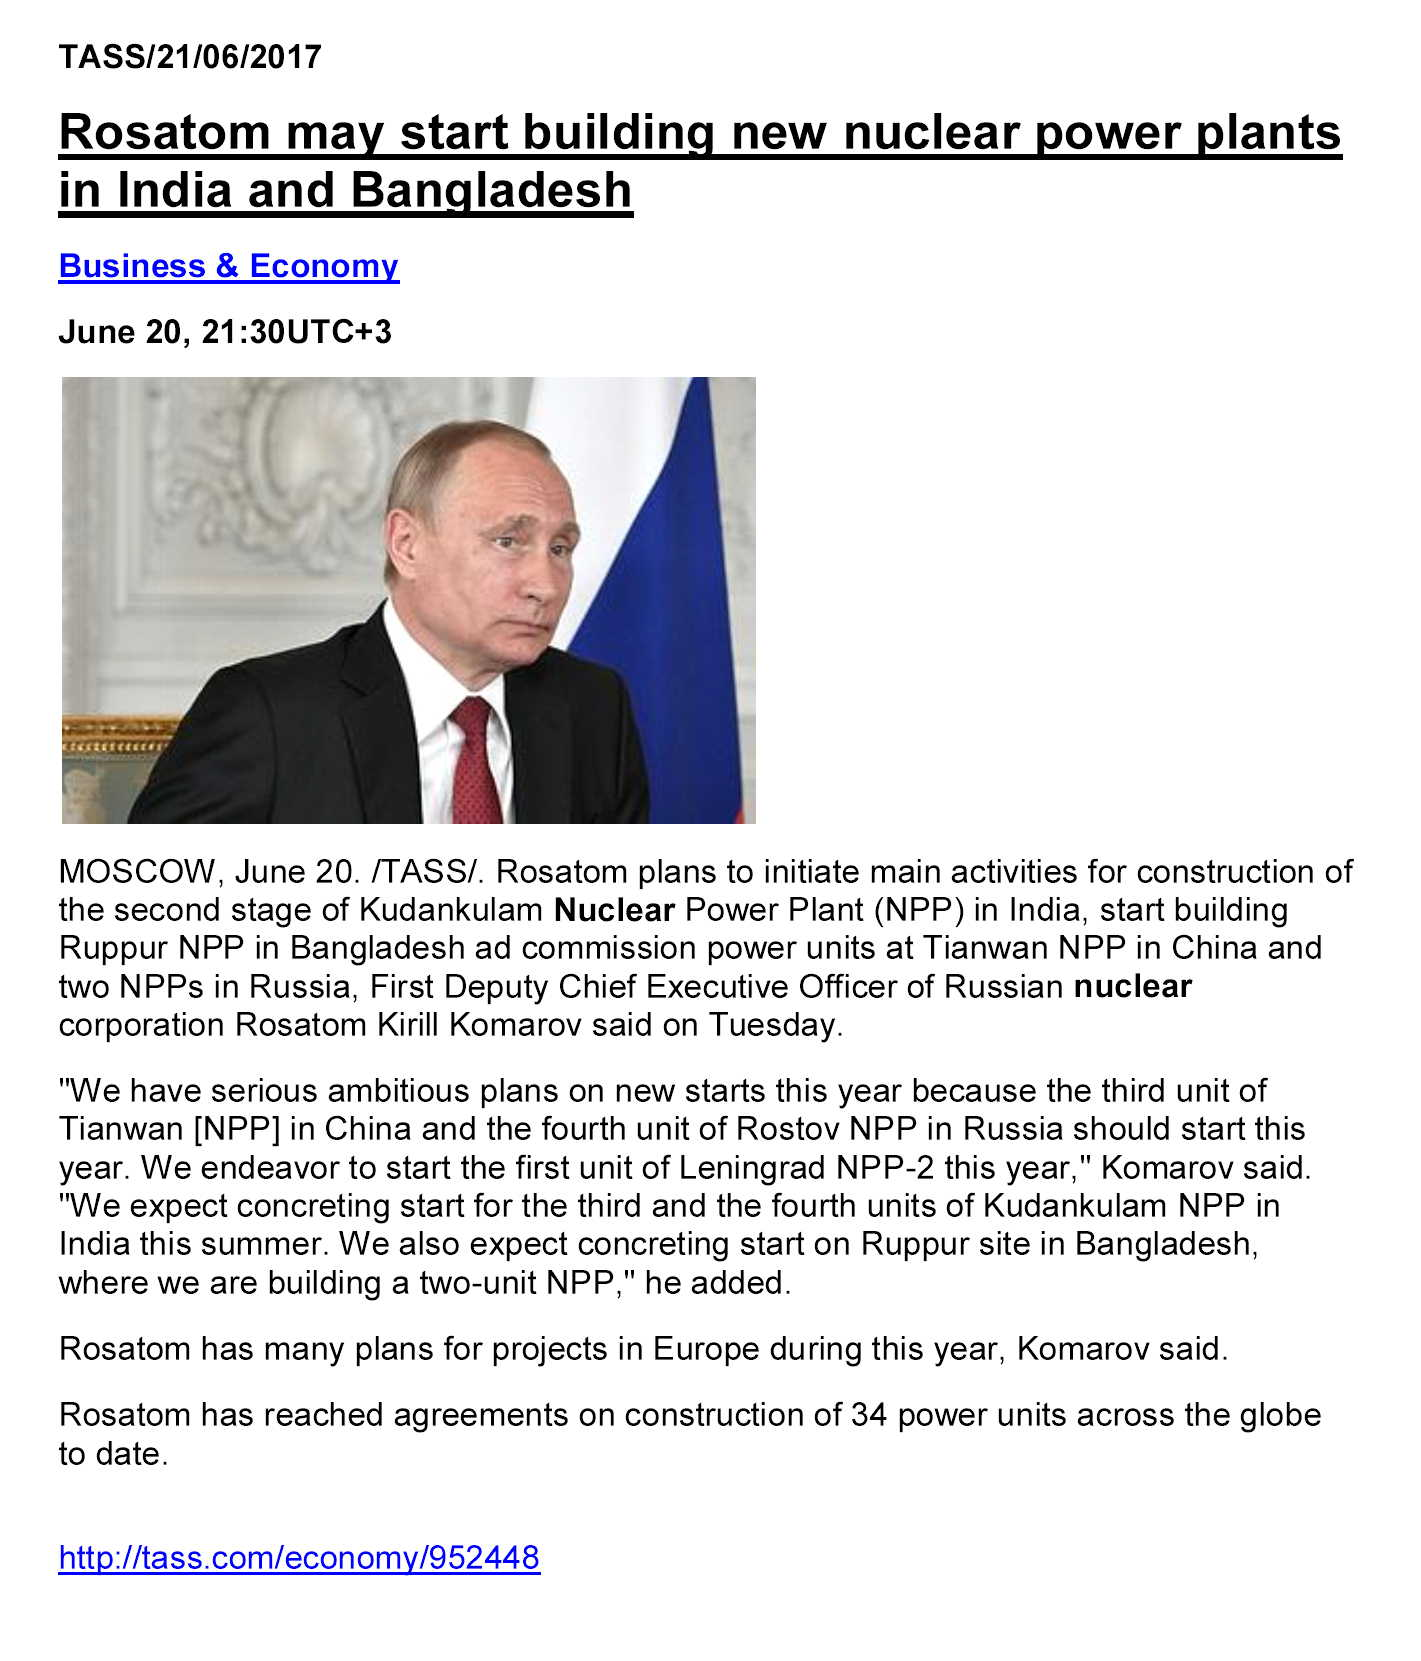 Rosatom may start building new nuclear power plants in India and